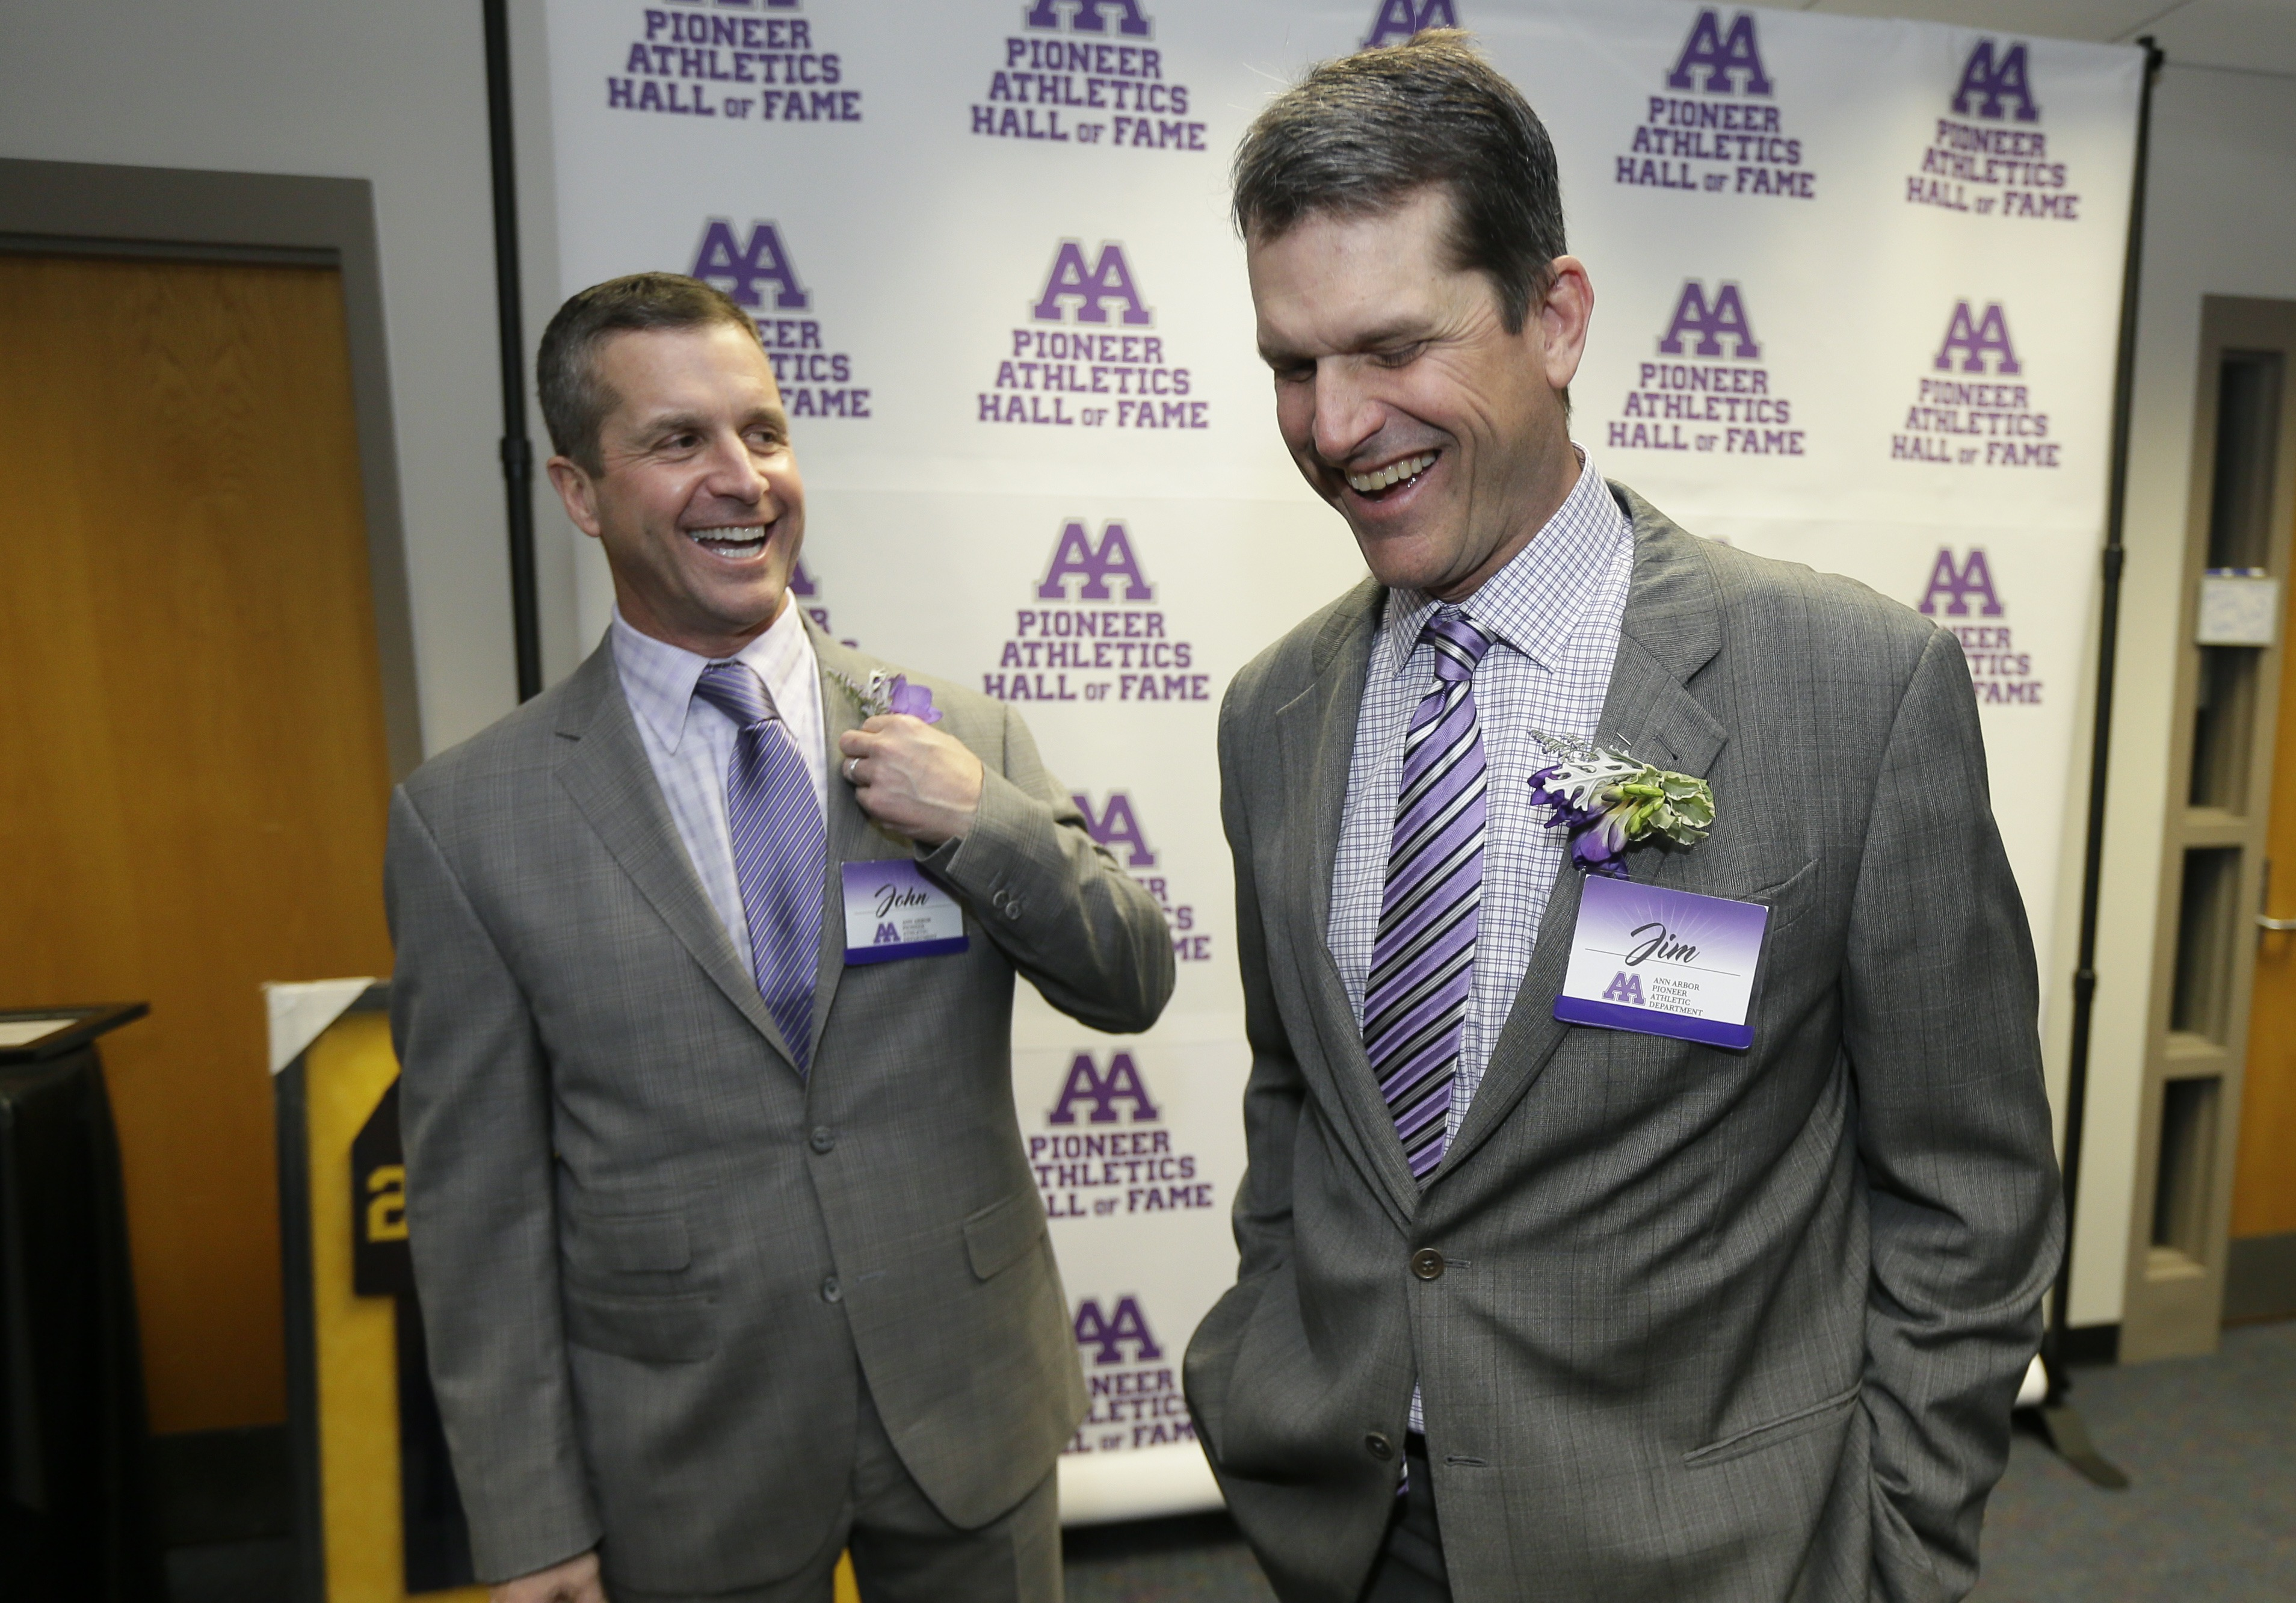 Baltimore Ravens head coach John Harbaugh, left, laughs with brother, Michigan head football coach Jim Harbaugh before their induction into the Ann Arbor Pioneer High School Hall of Fame, Friday, March 11, 2016, in Ann Arbor, Mich. (AP Photo/Carlos Osorio